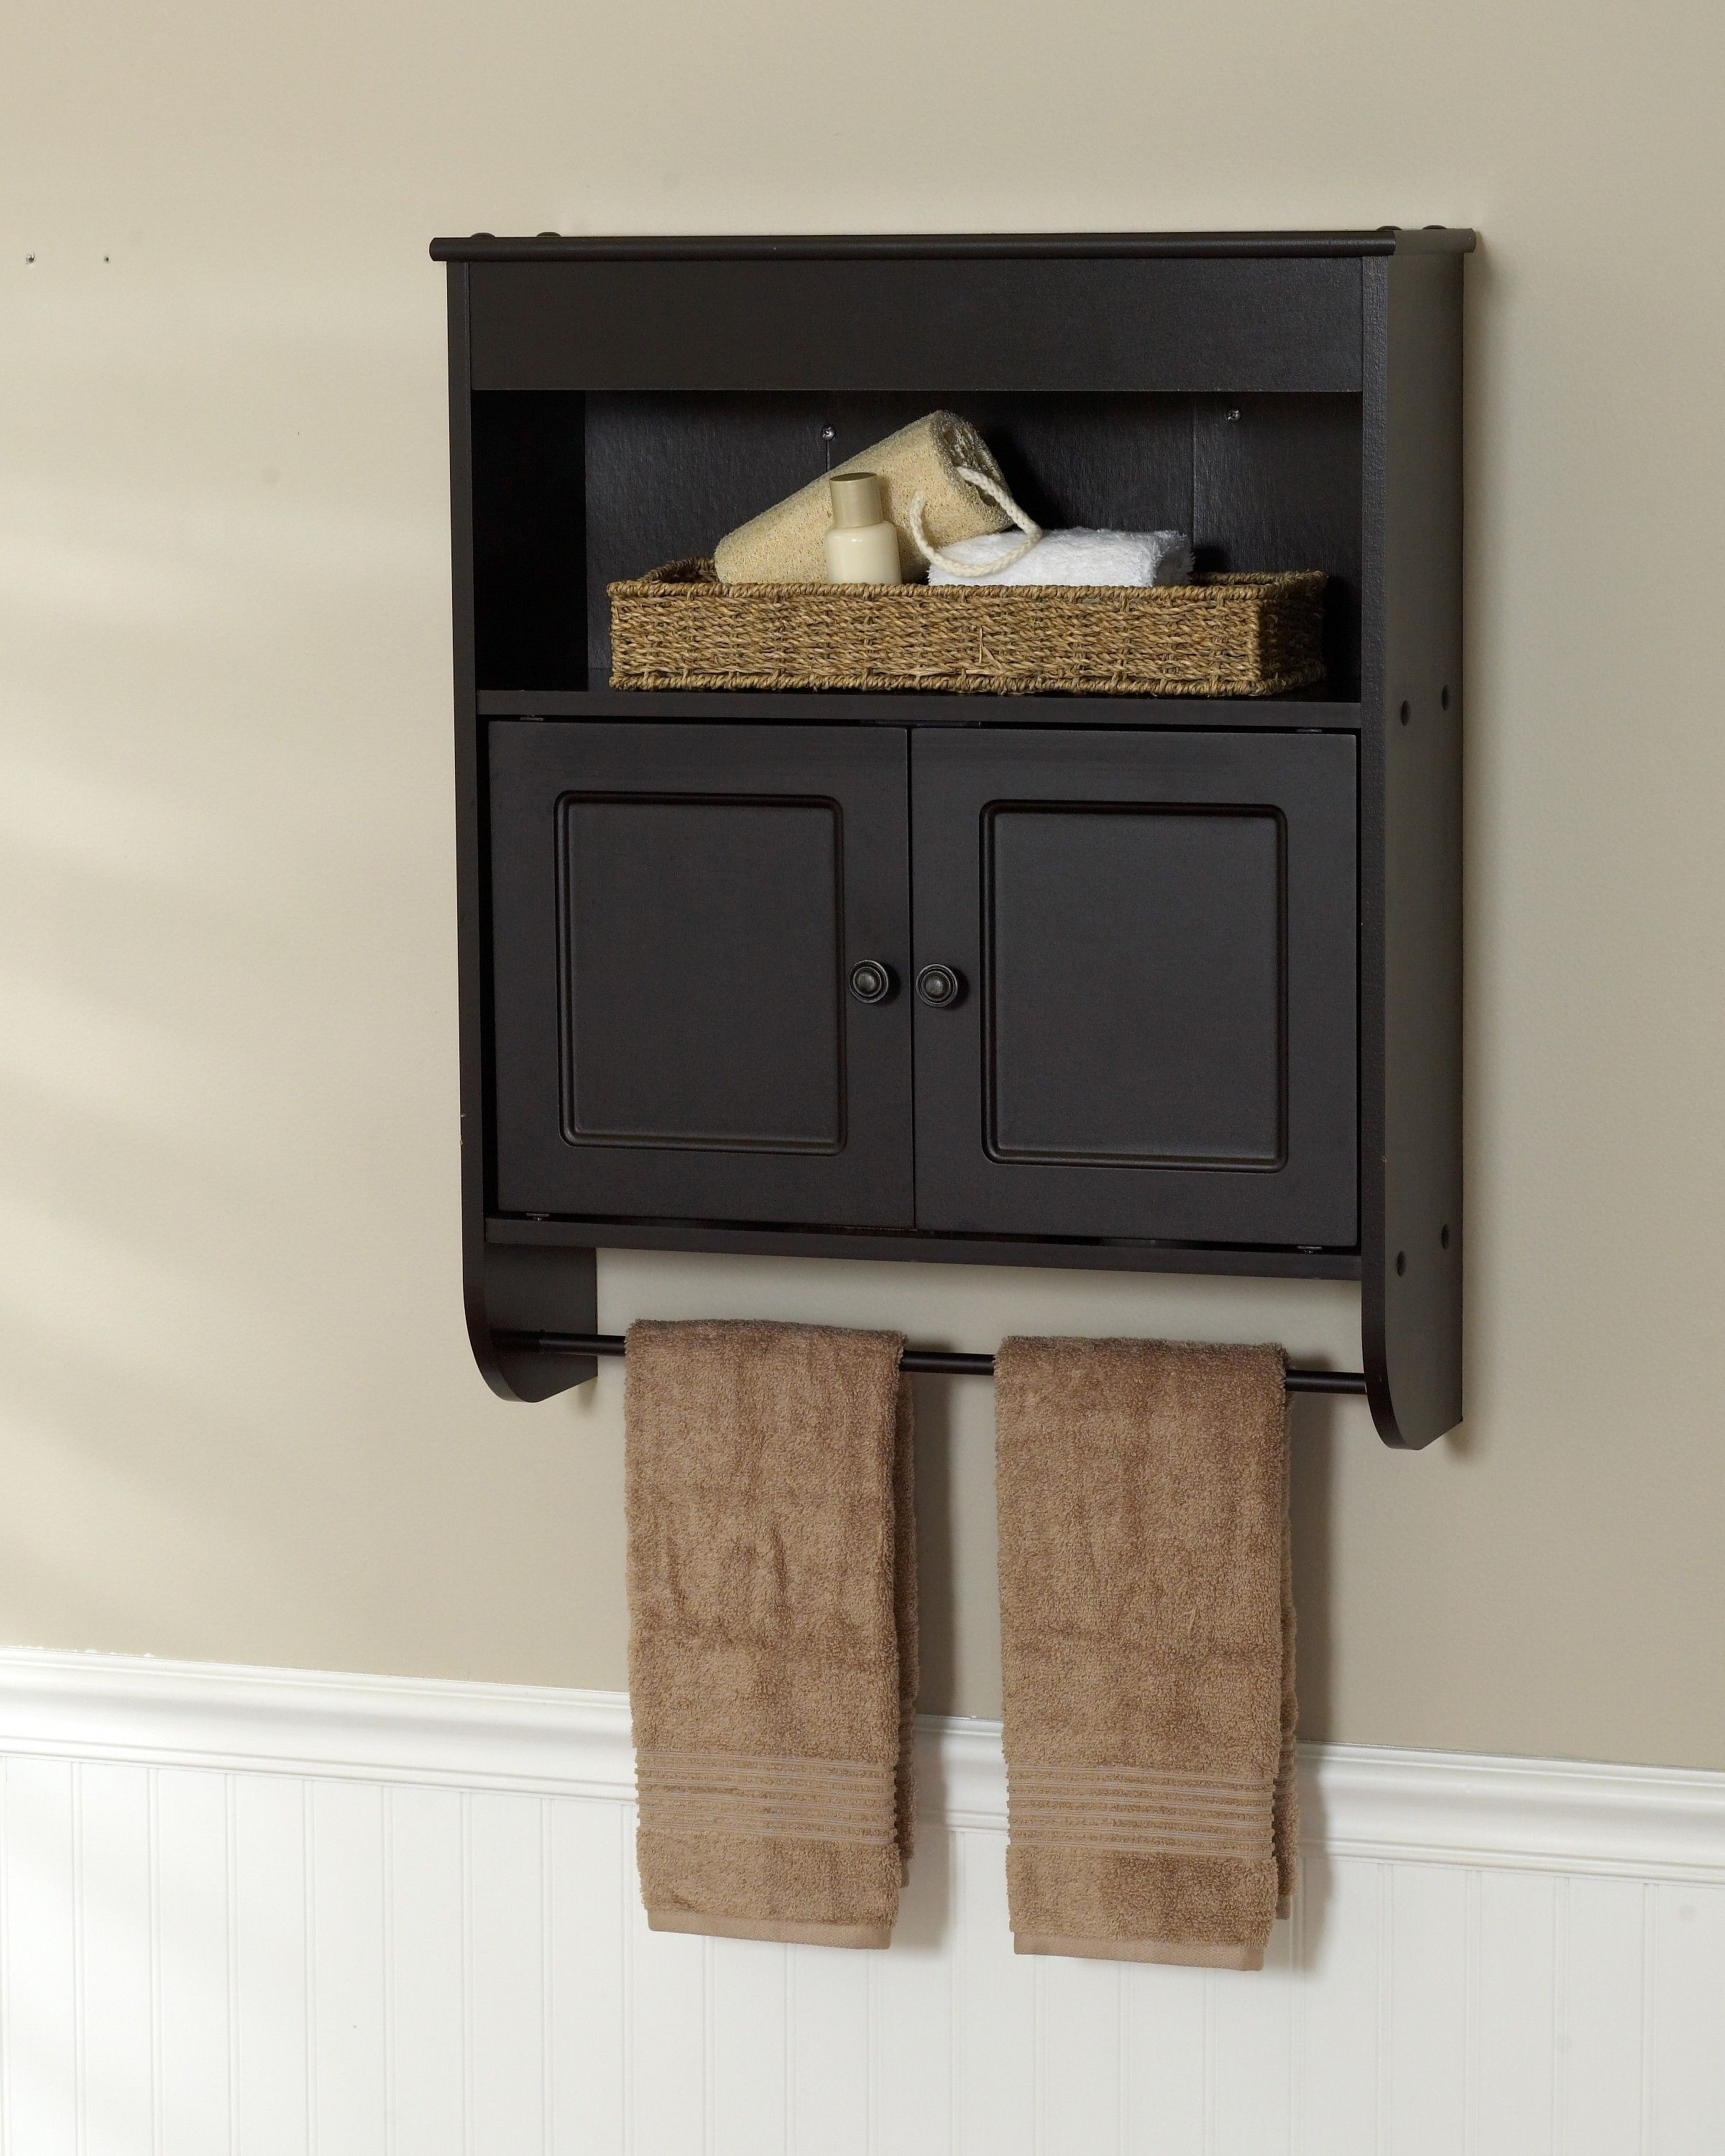 Bathroom cabinet ideas storage wall mounted bathroom cabinet with towel bar  bottomunion